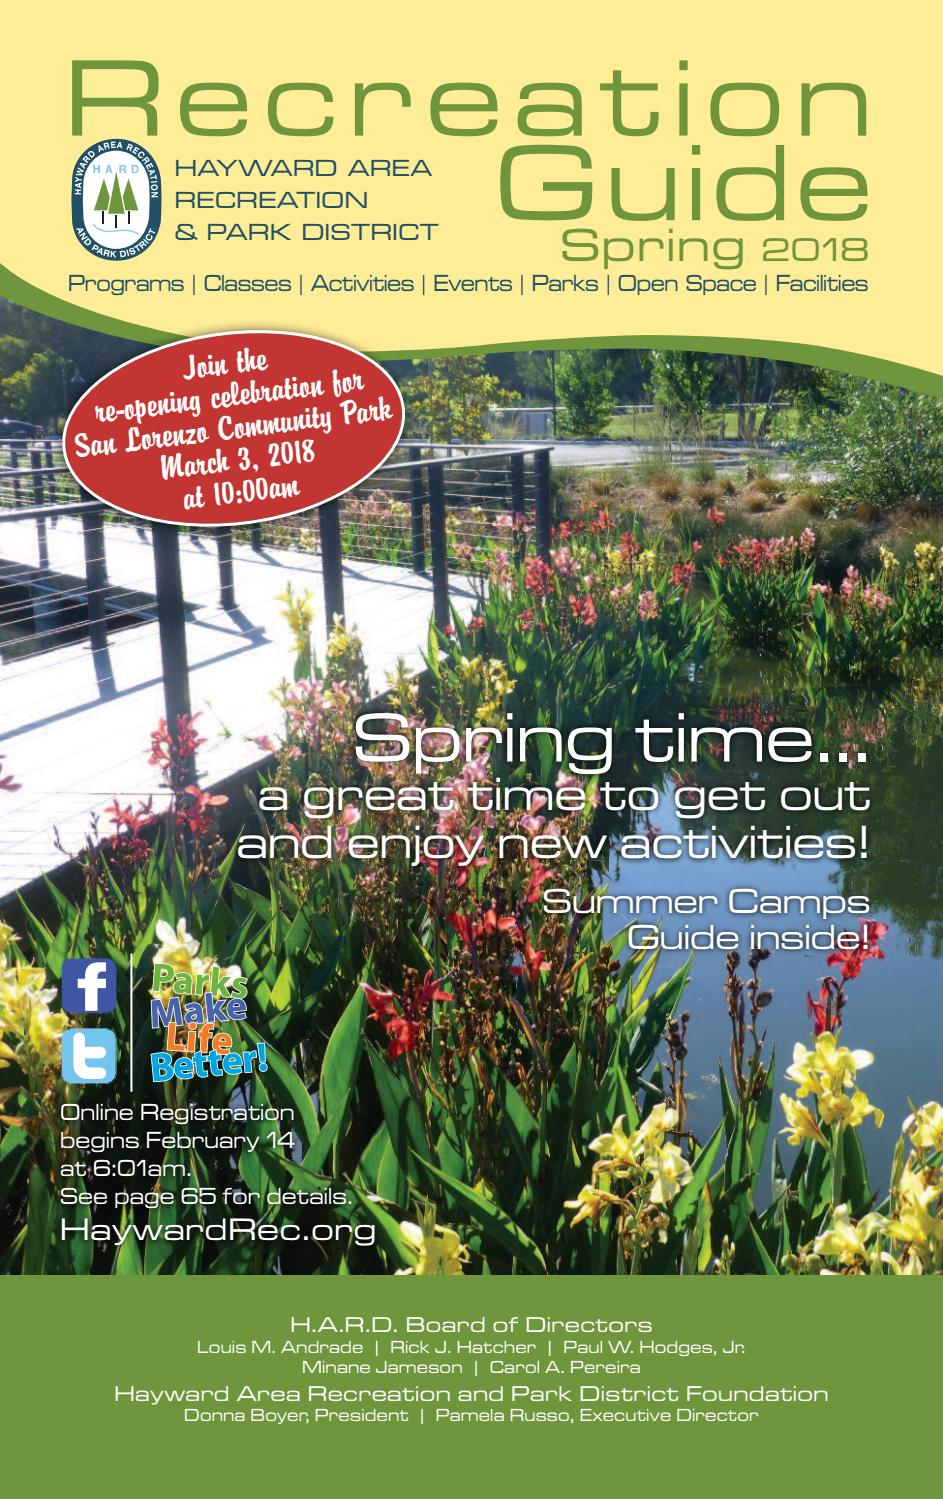 Hayward Recreation And Park District Guide Spring 2018 By Nicole Roa   Issuu